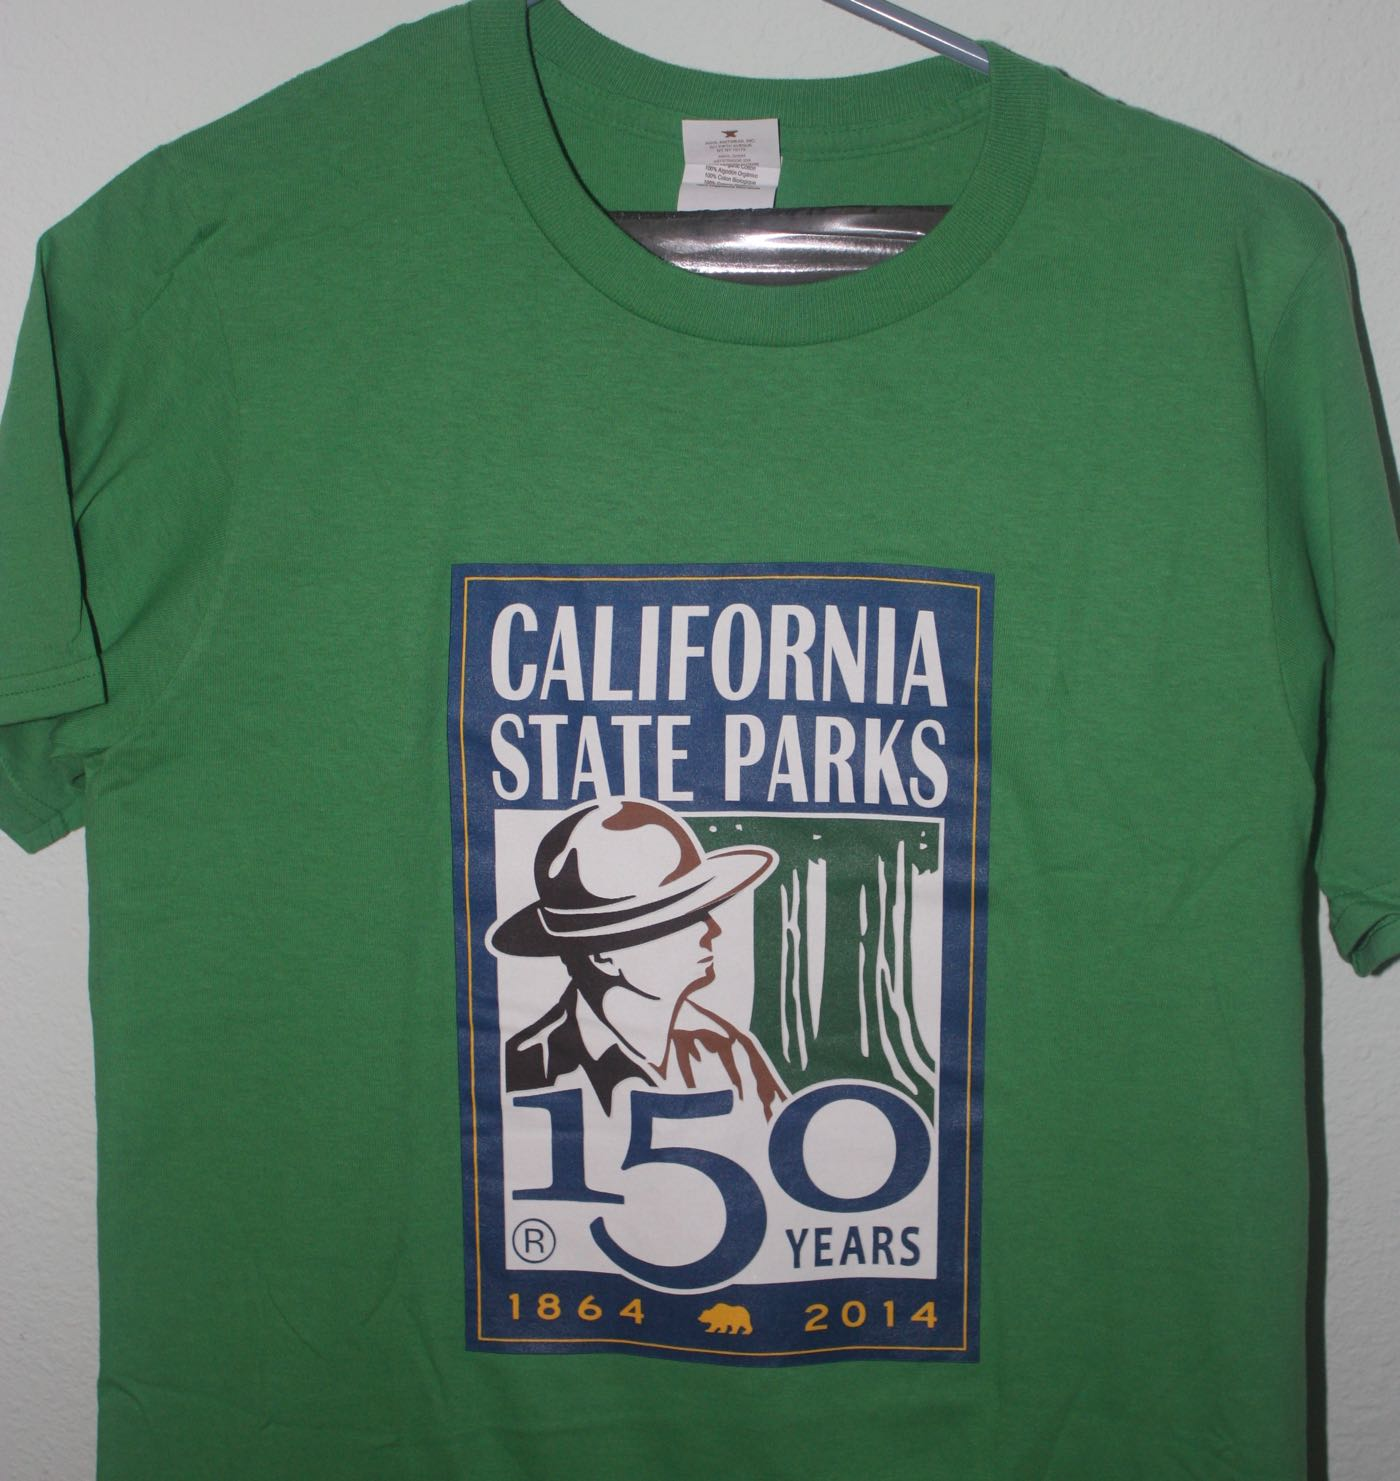 California State Parks 150th Anniversary Tee